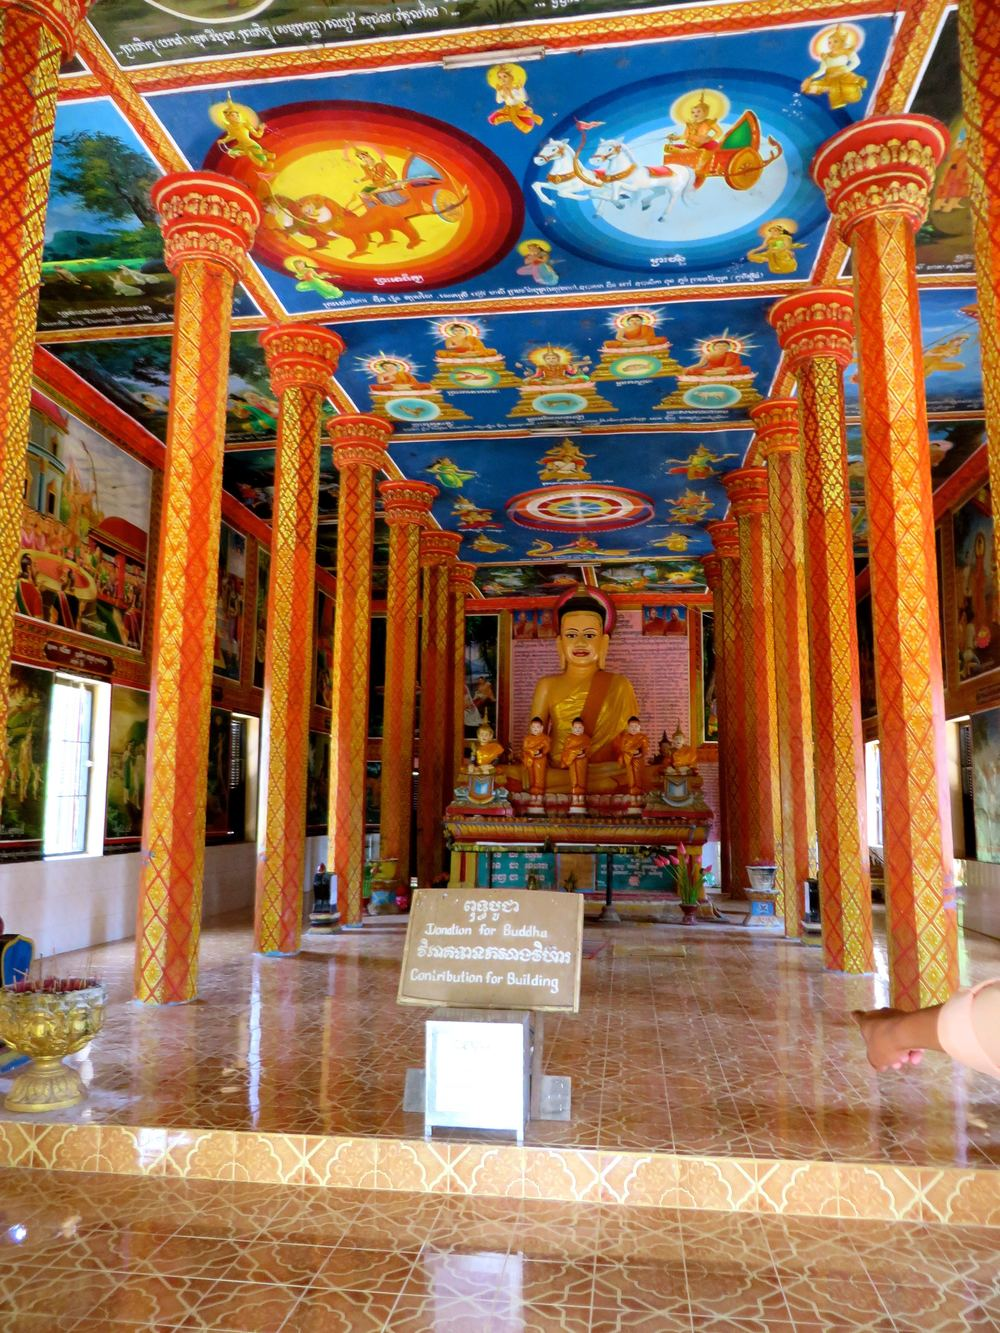 Buddhist temple in Siem Reap.  Painted + bright, telling the story of Buddha, clearly different than previous temples seen in Laos and Thailand.  A lot of the temples are new as they were built post 1980.  The Khmer Rouge forced monks to take off their robes and work in the fields as well, to illustrate equality among men.